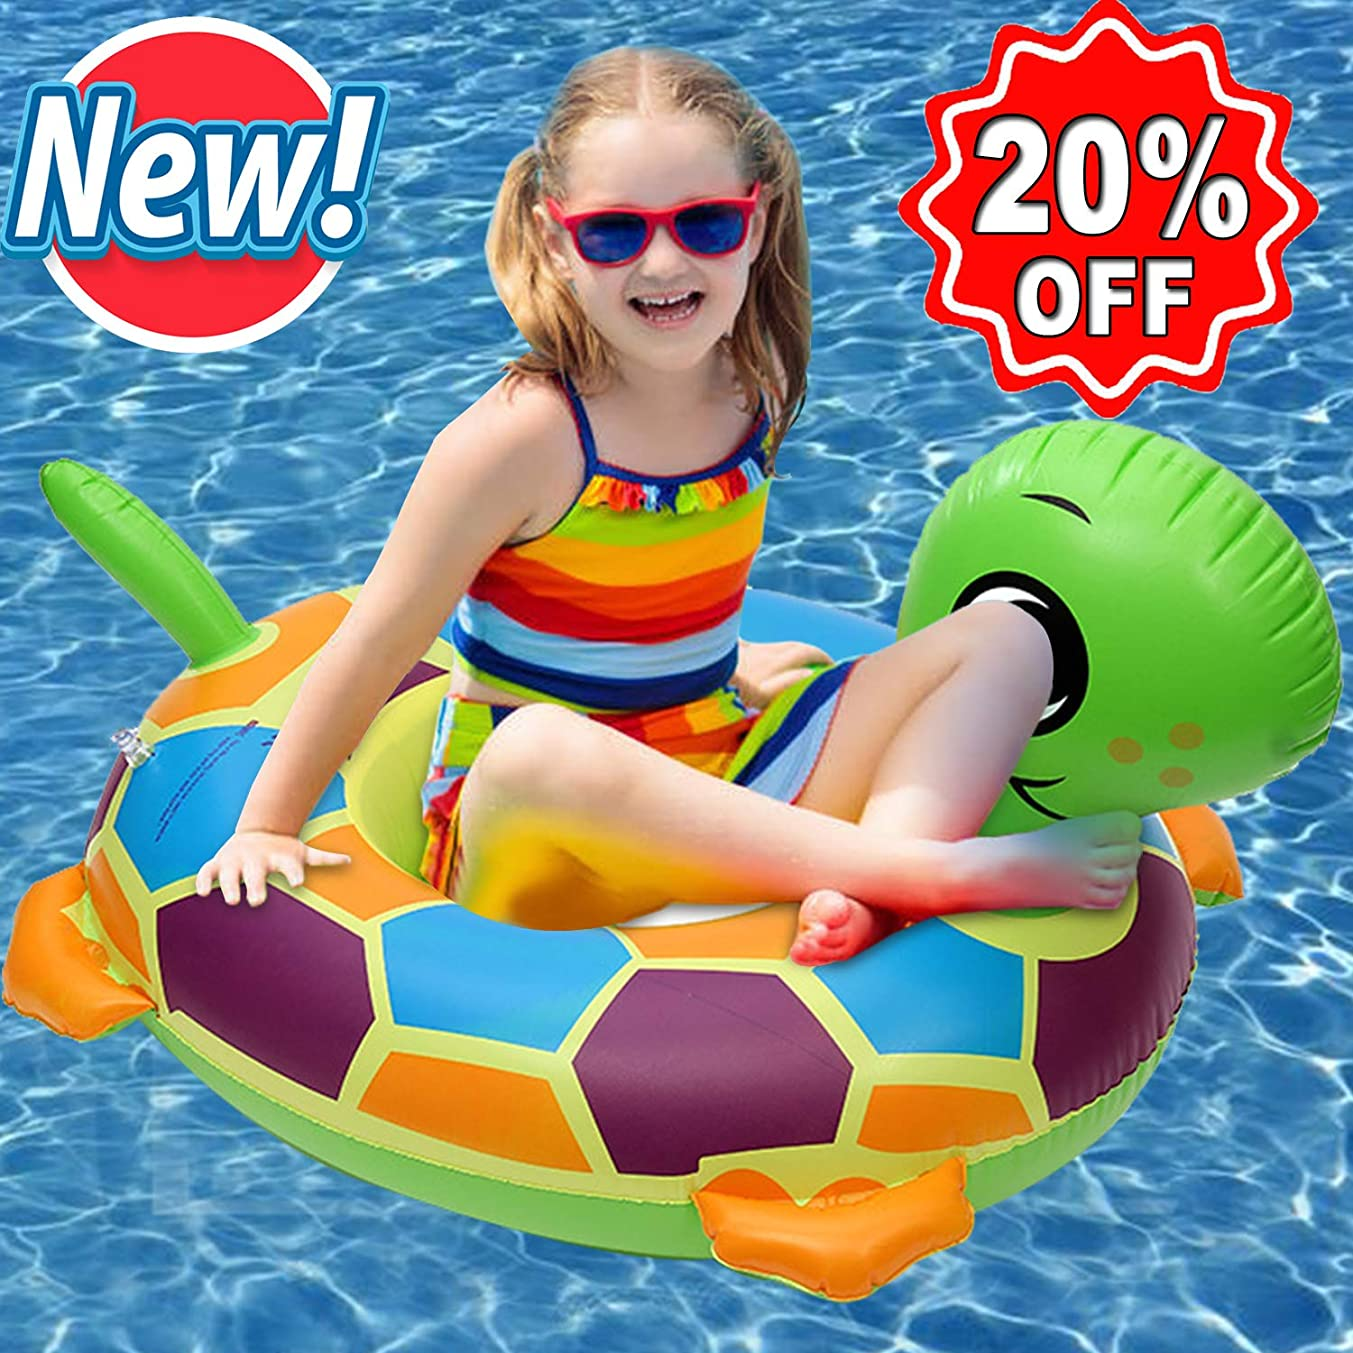 Roksy Inc Baby Swimming Float Tortoise Inflatable Swim Floats Boat Ride-On Ring for Baby Infant Toddlers Kids Age 6 -18 Months Comfortable Lounger Pool Toys for Summer Water Party (Tortoise)